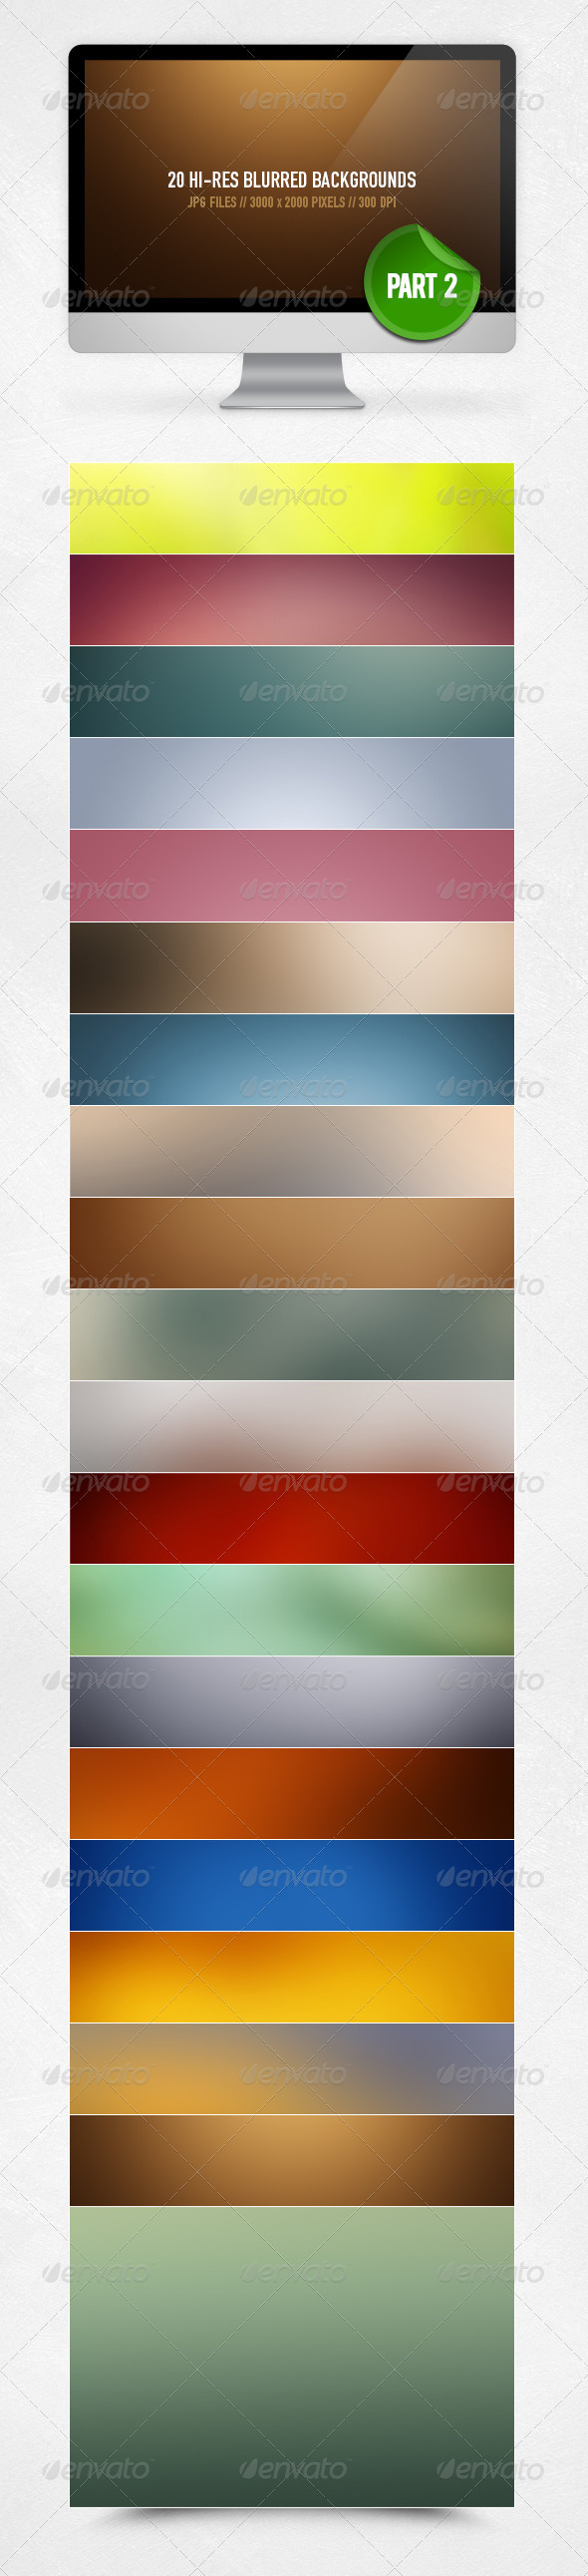 GraphicRiver 20 Blurred Backgrounds Part 2 3045983